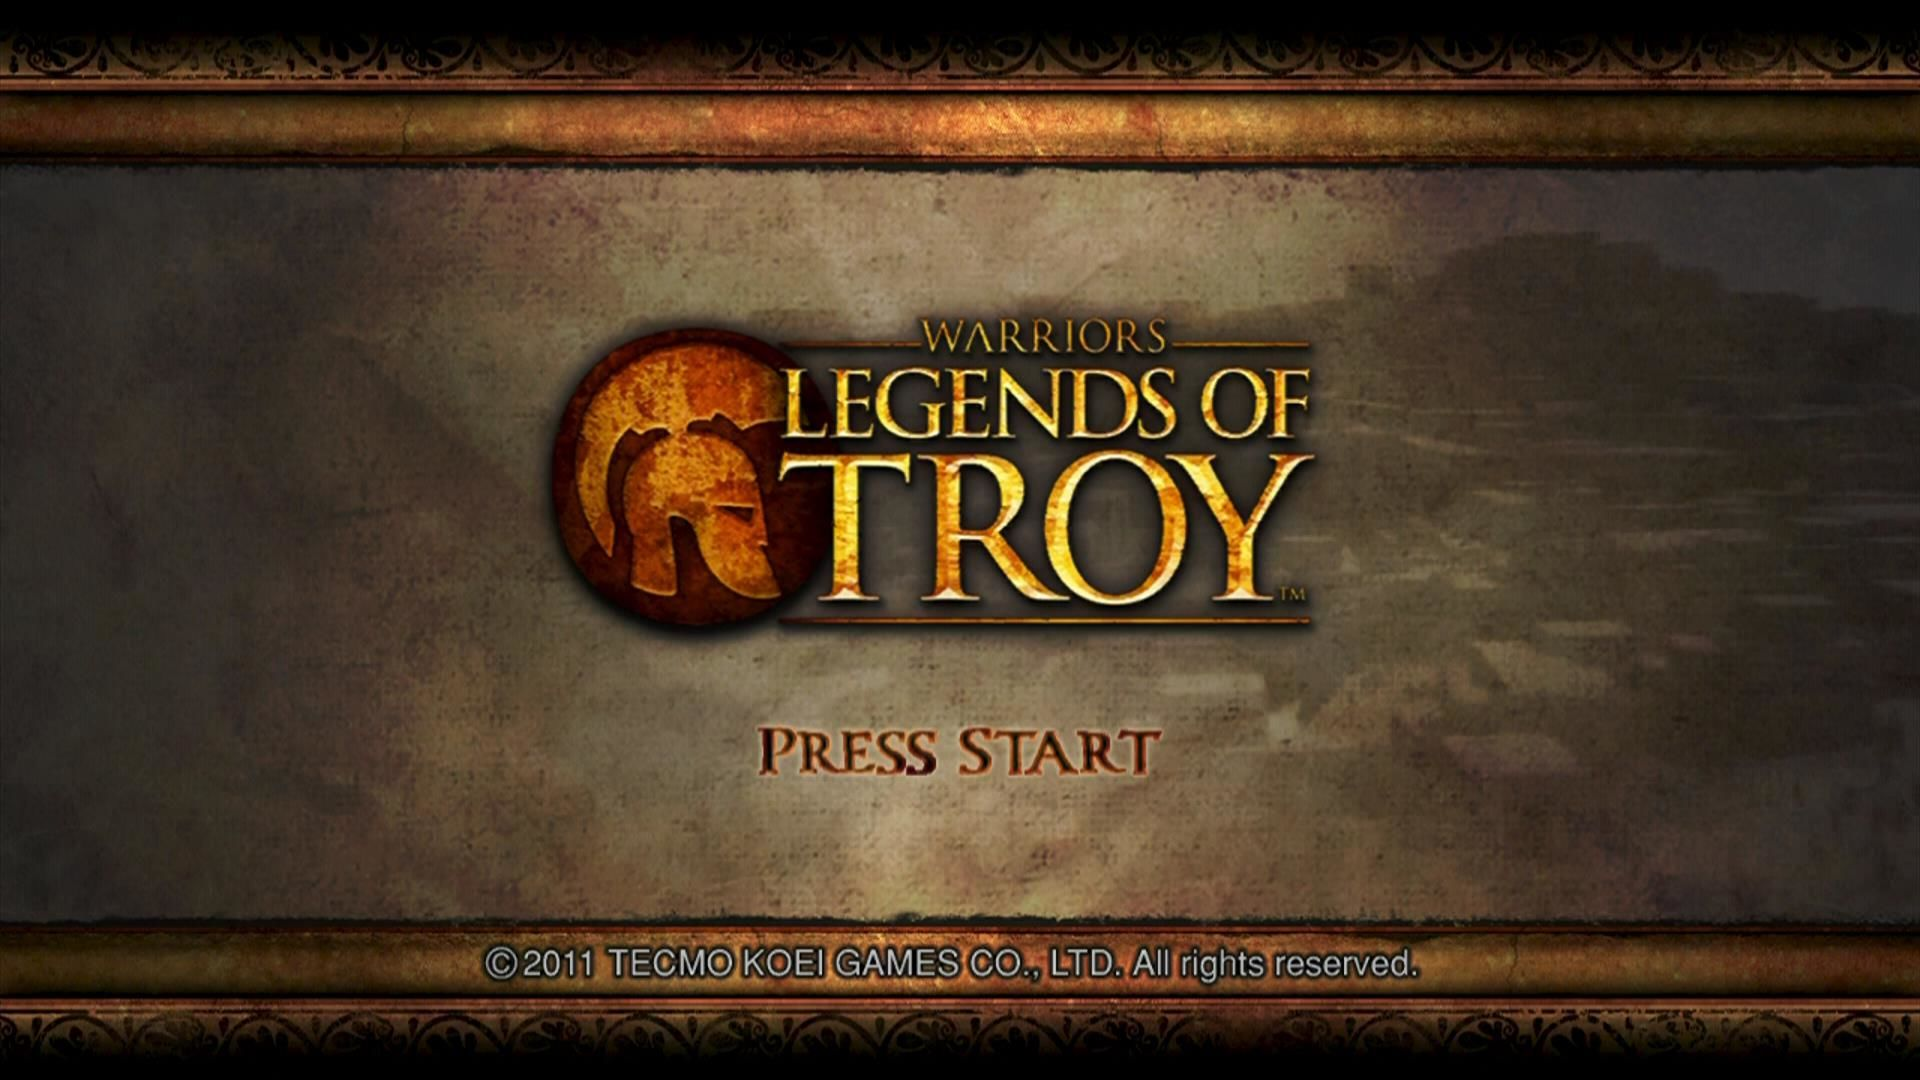 Warriors: Legends of Troy Xbox 360 Start screen